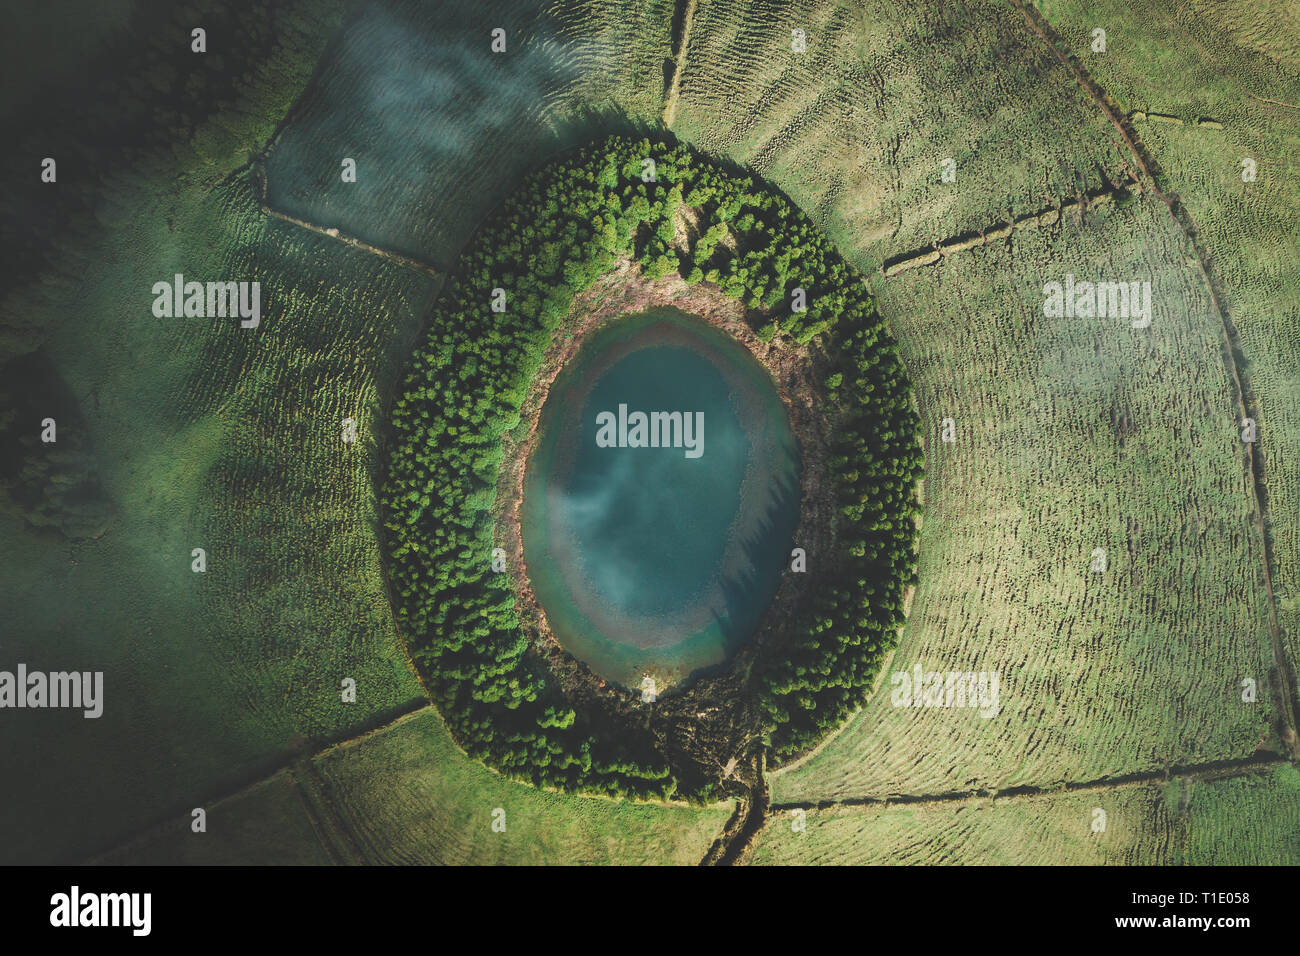 Drone Photography Lagoon - Stock Image